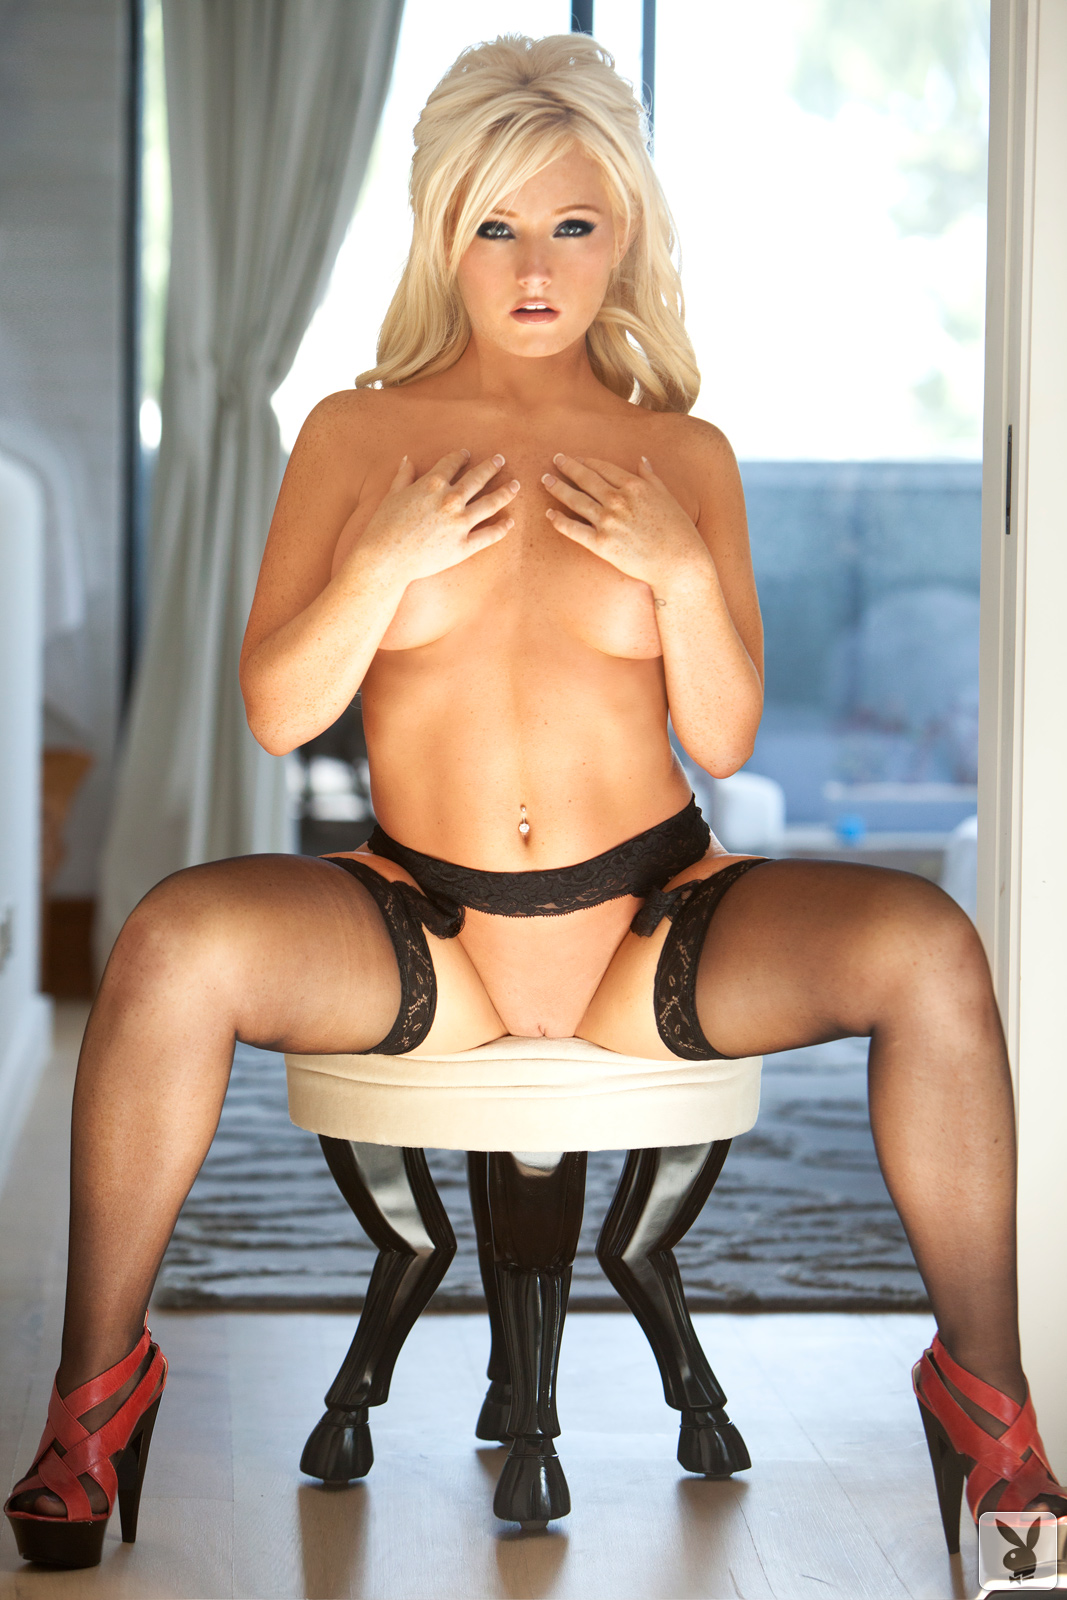 Anabella Nude anabella marie nude - 13 pictures: rating 8.66/10